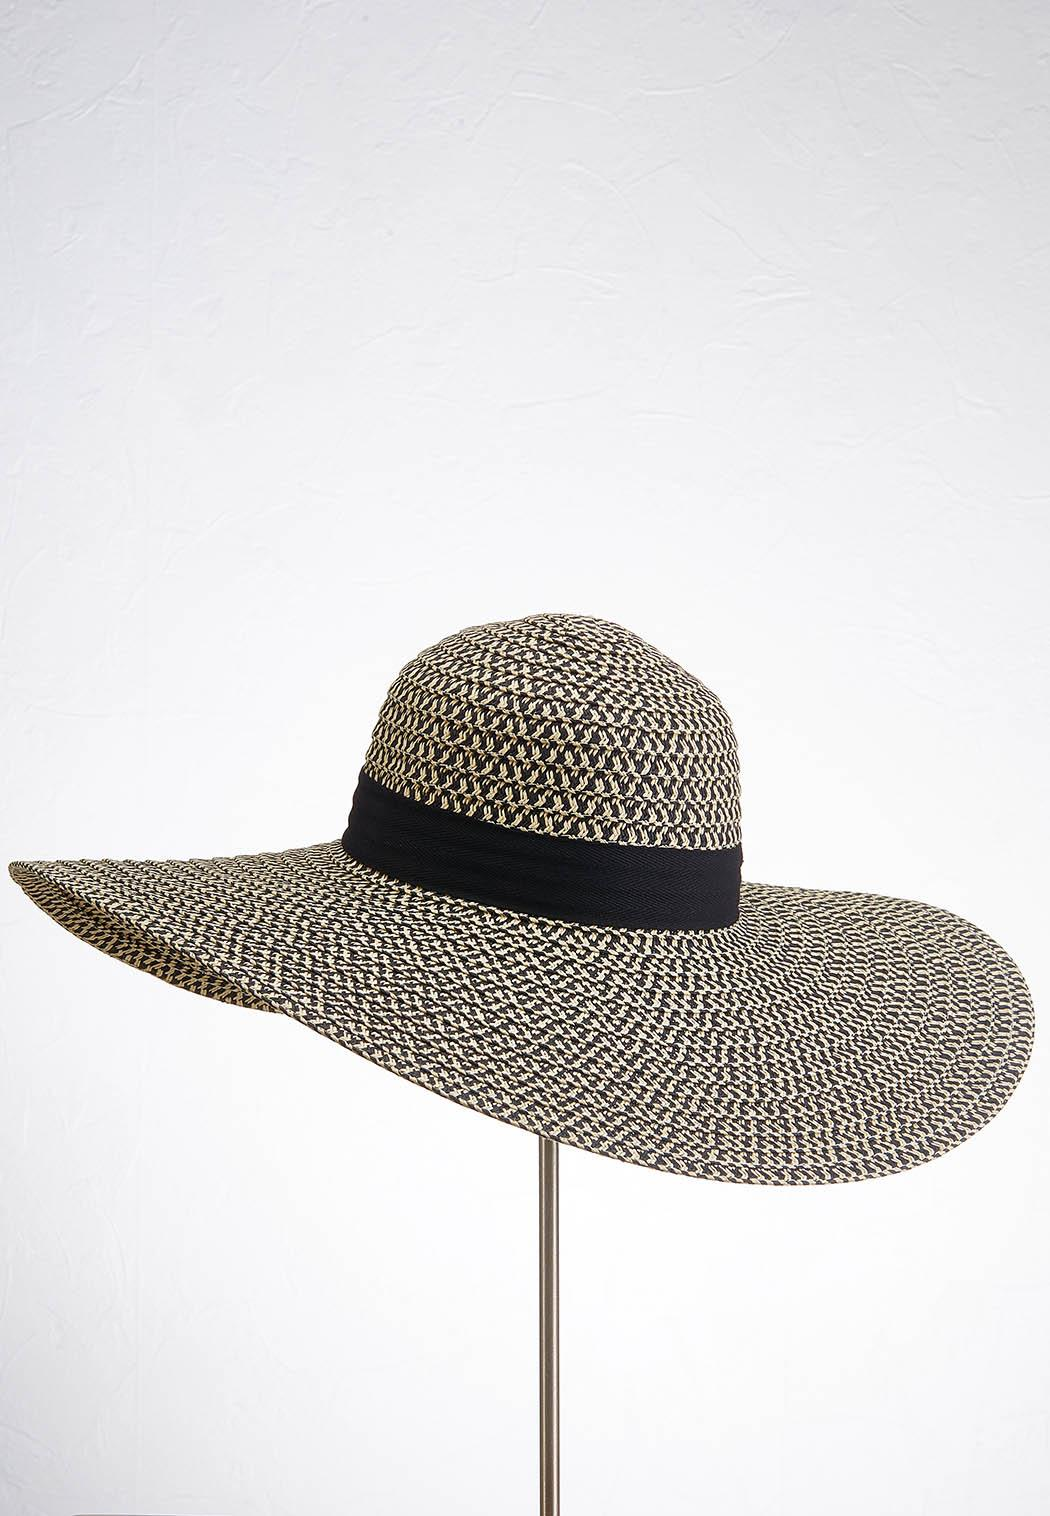 Black And Tan Floppy Hat